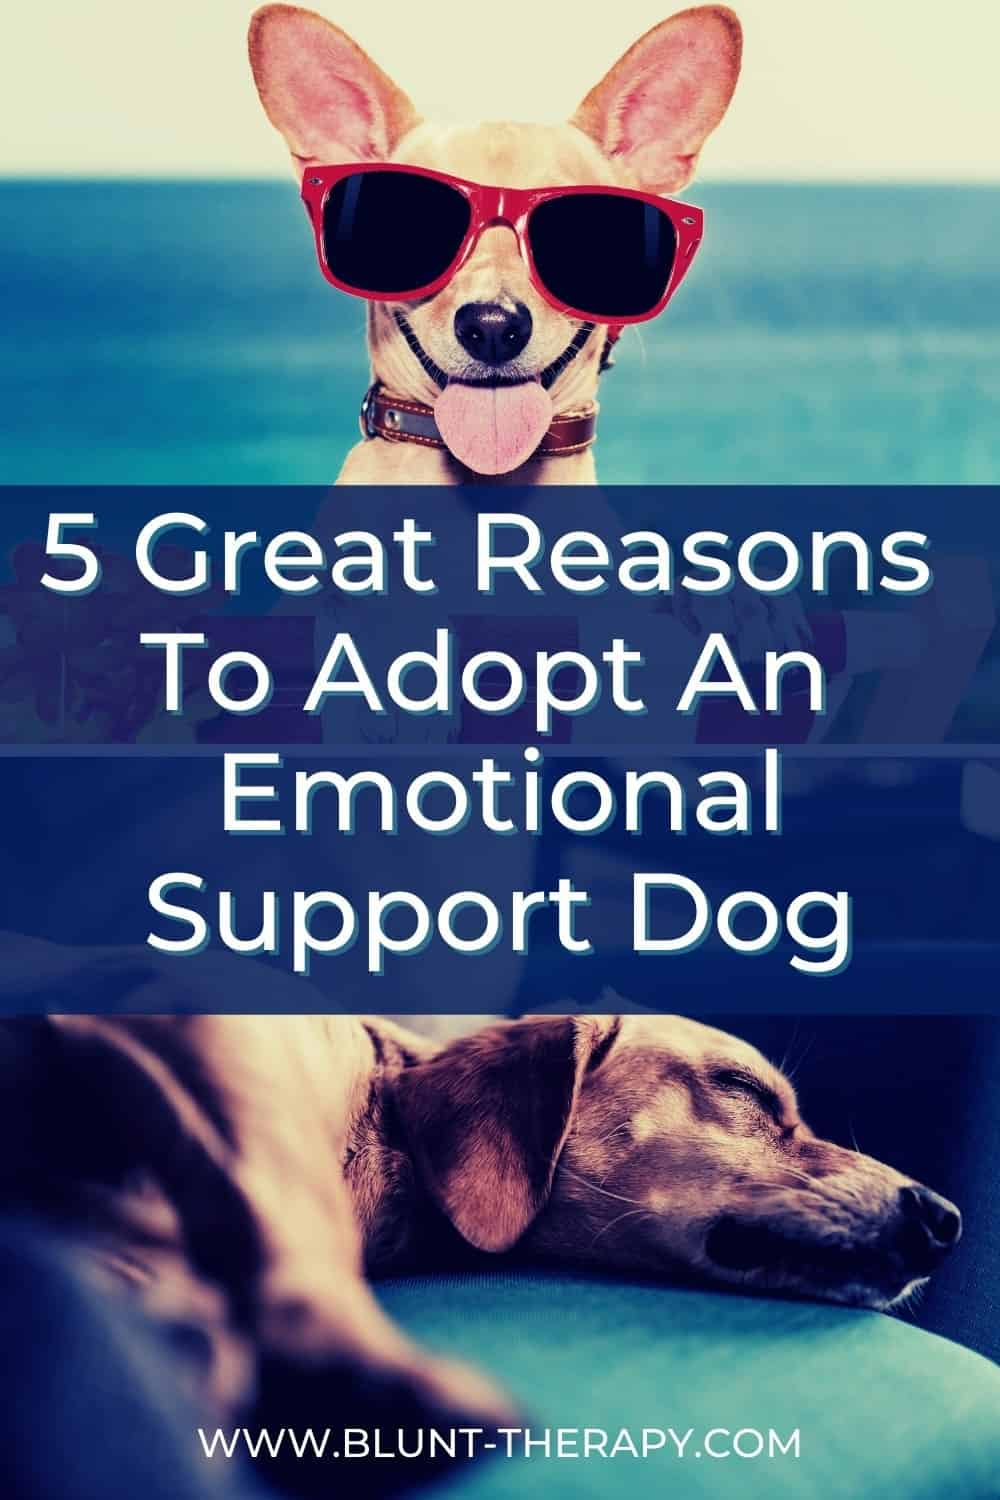 5 Great Reasons To Adopt An emotional Support Dog